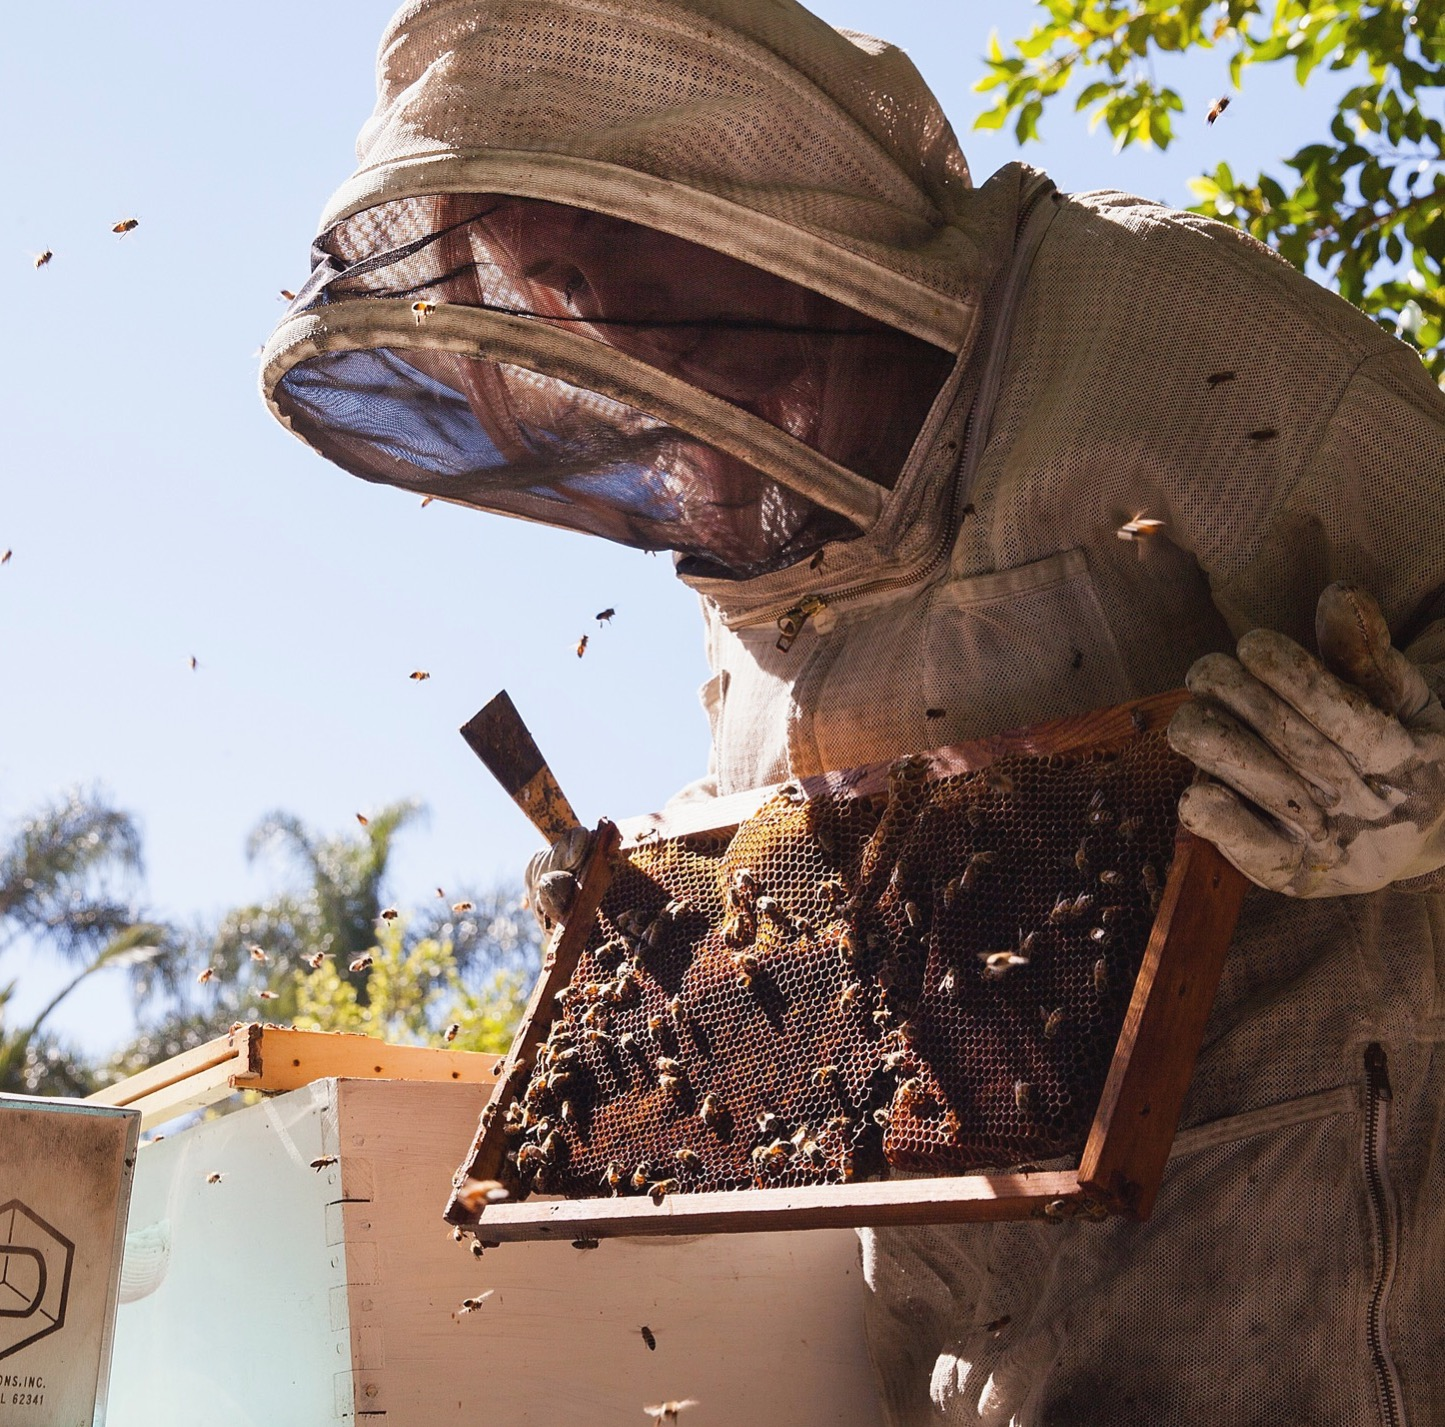 HOW TO KEEP BEES CALM DURING INSPECTIONS